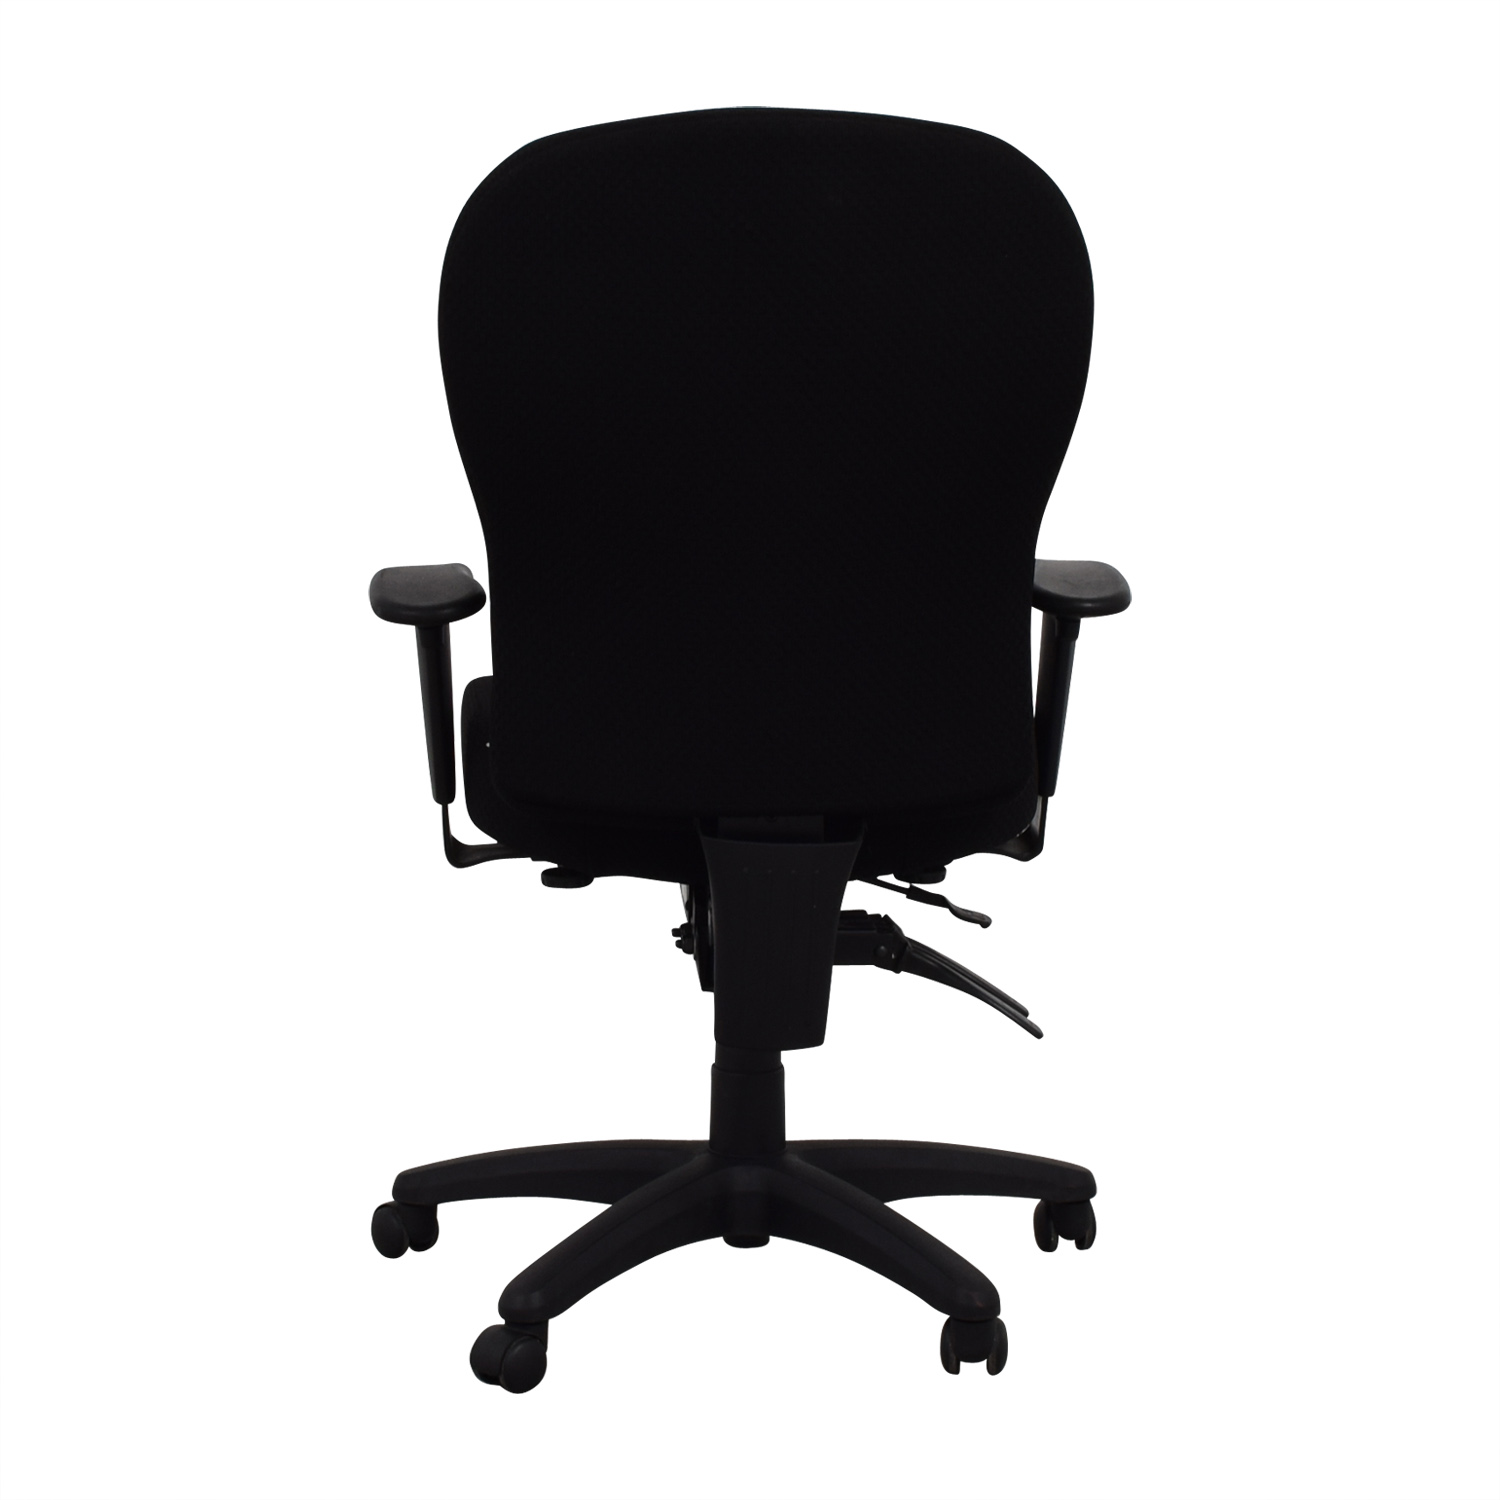 Tempur Pedic Desk Chair sale